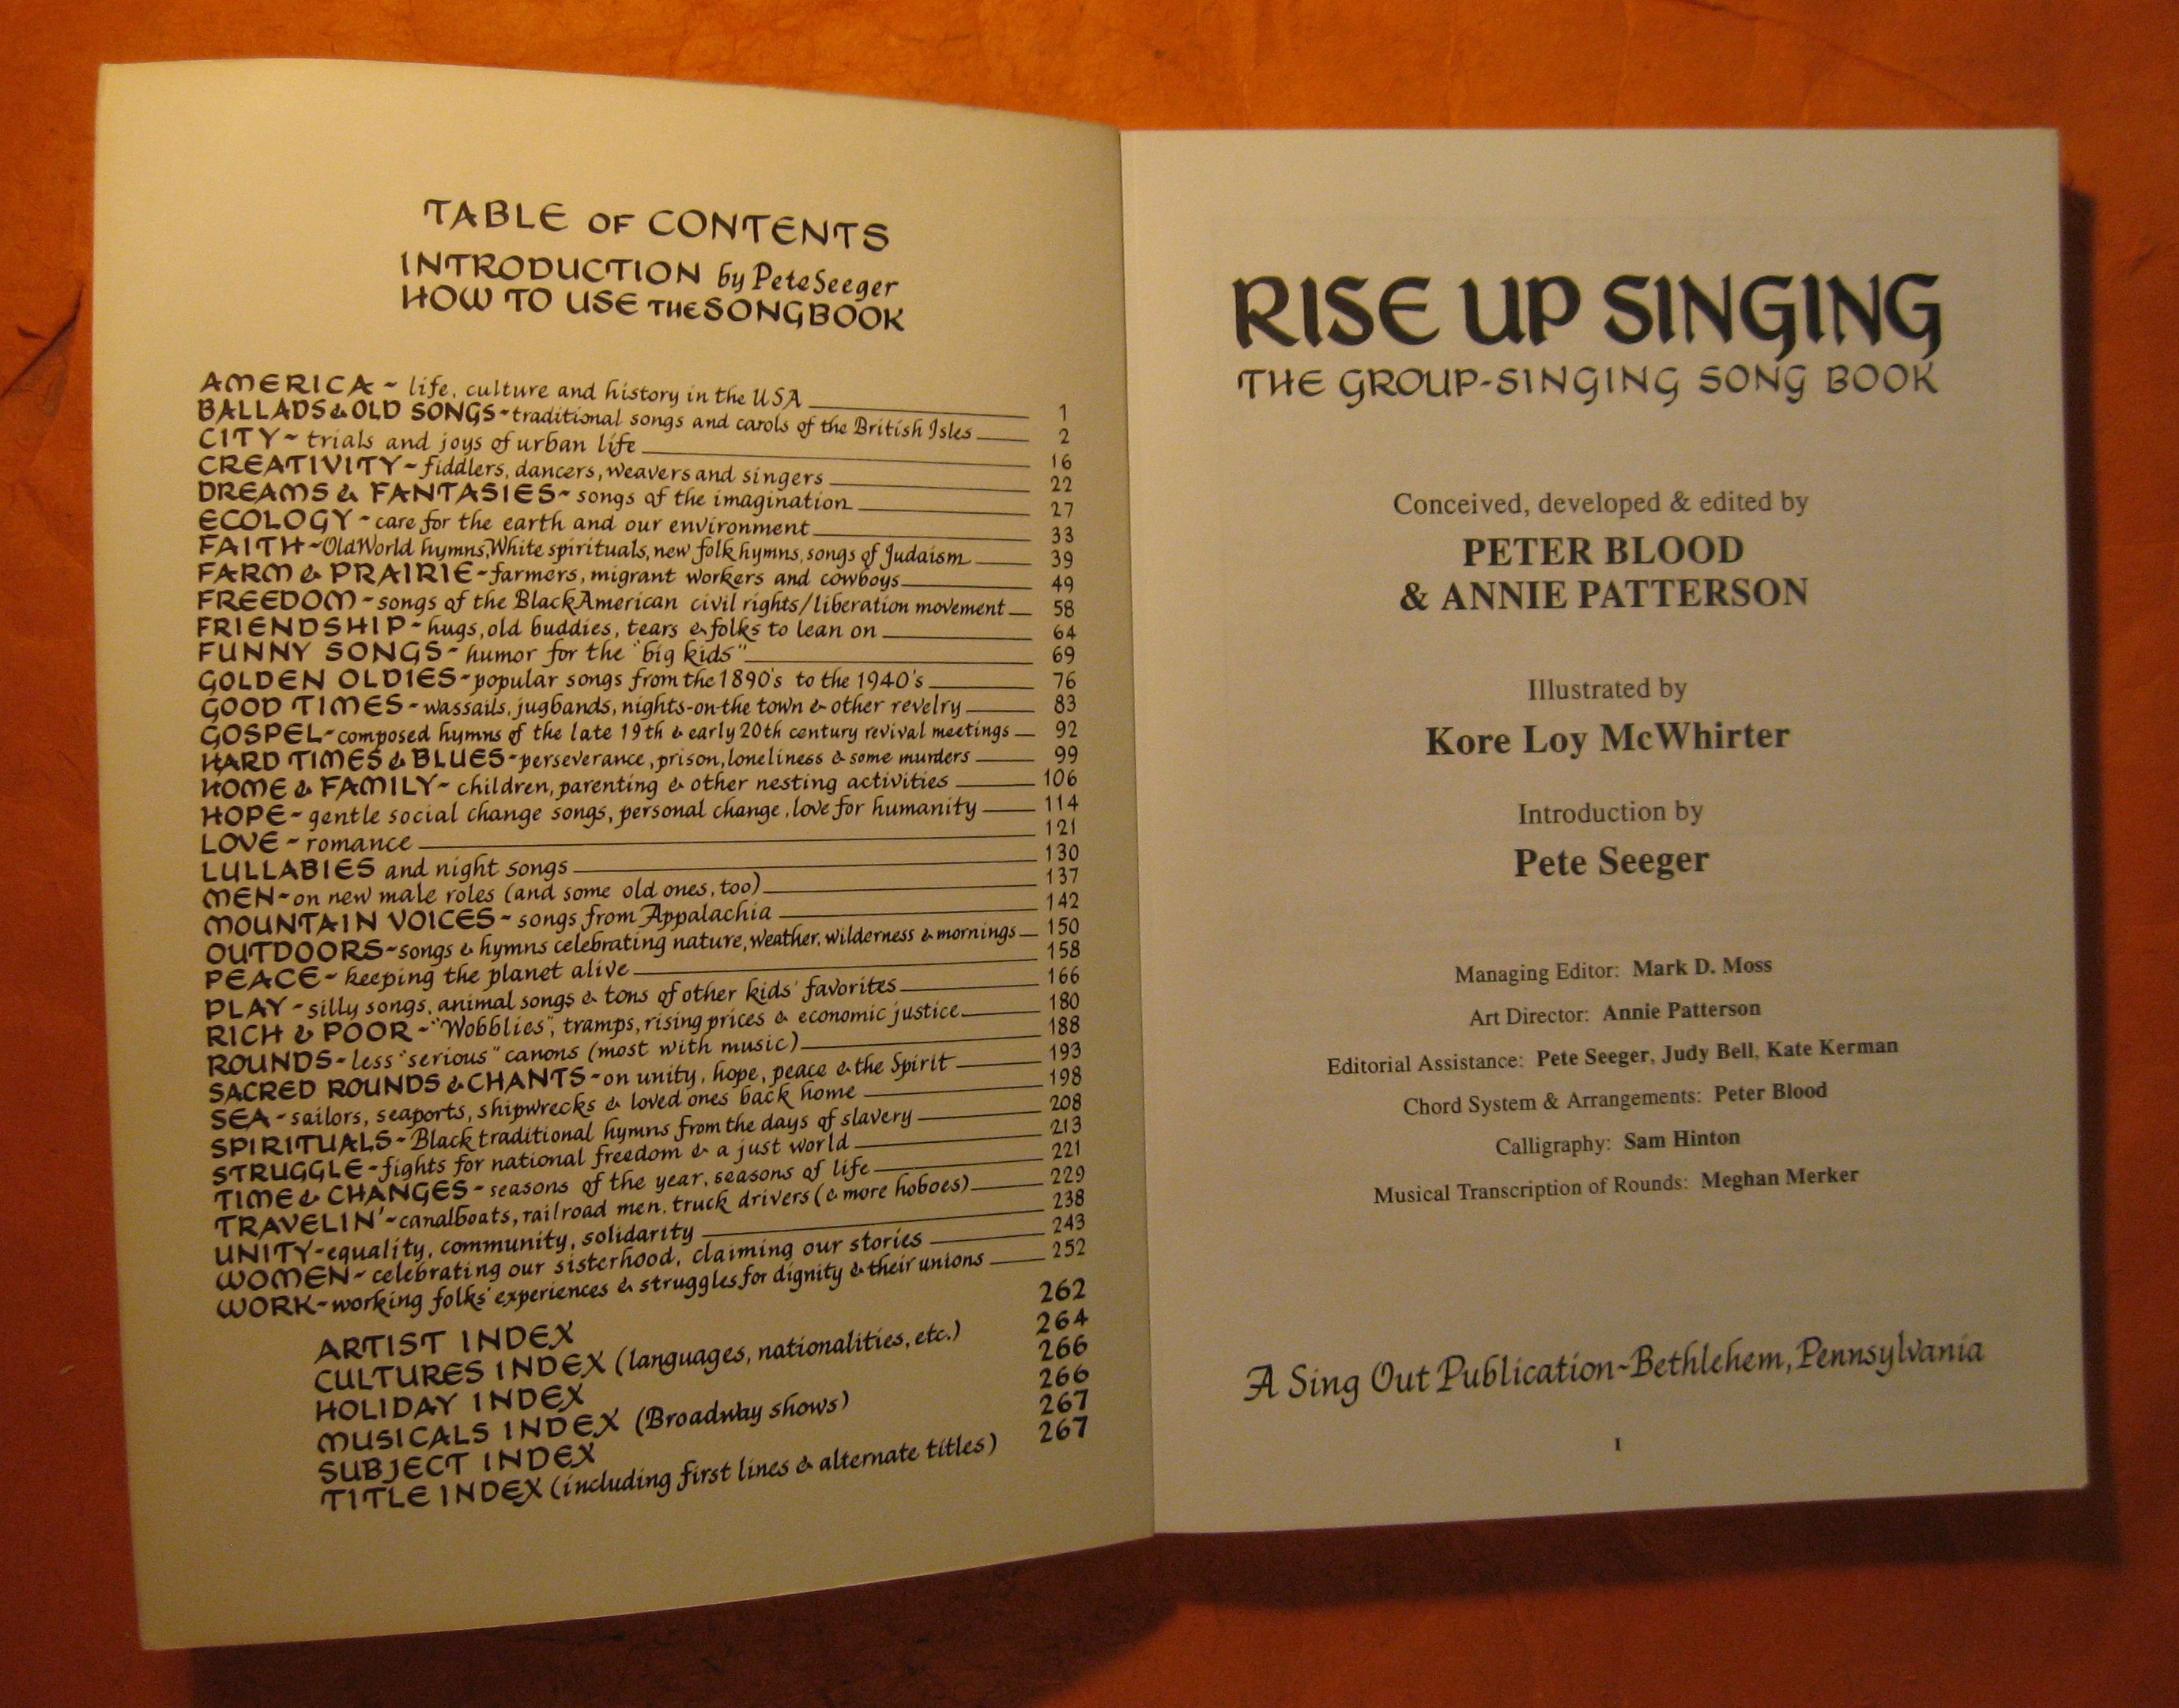 Image for Rise Up Singing:  The Group Singing Songbook, Words, Chords and Sources to 1200 Songs